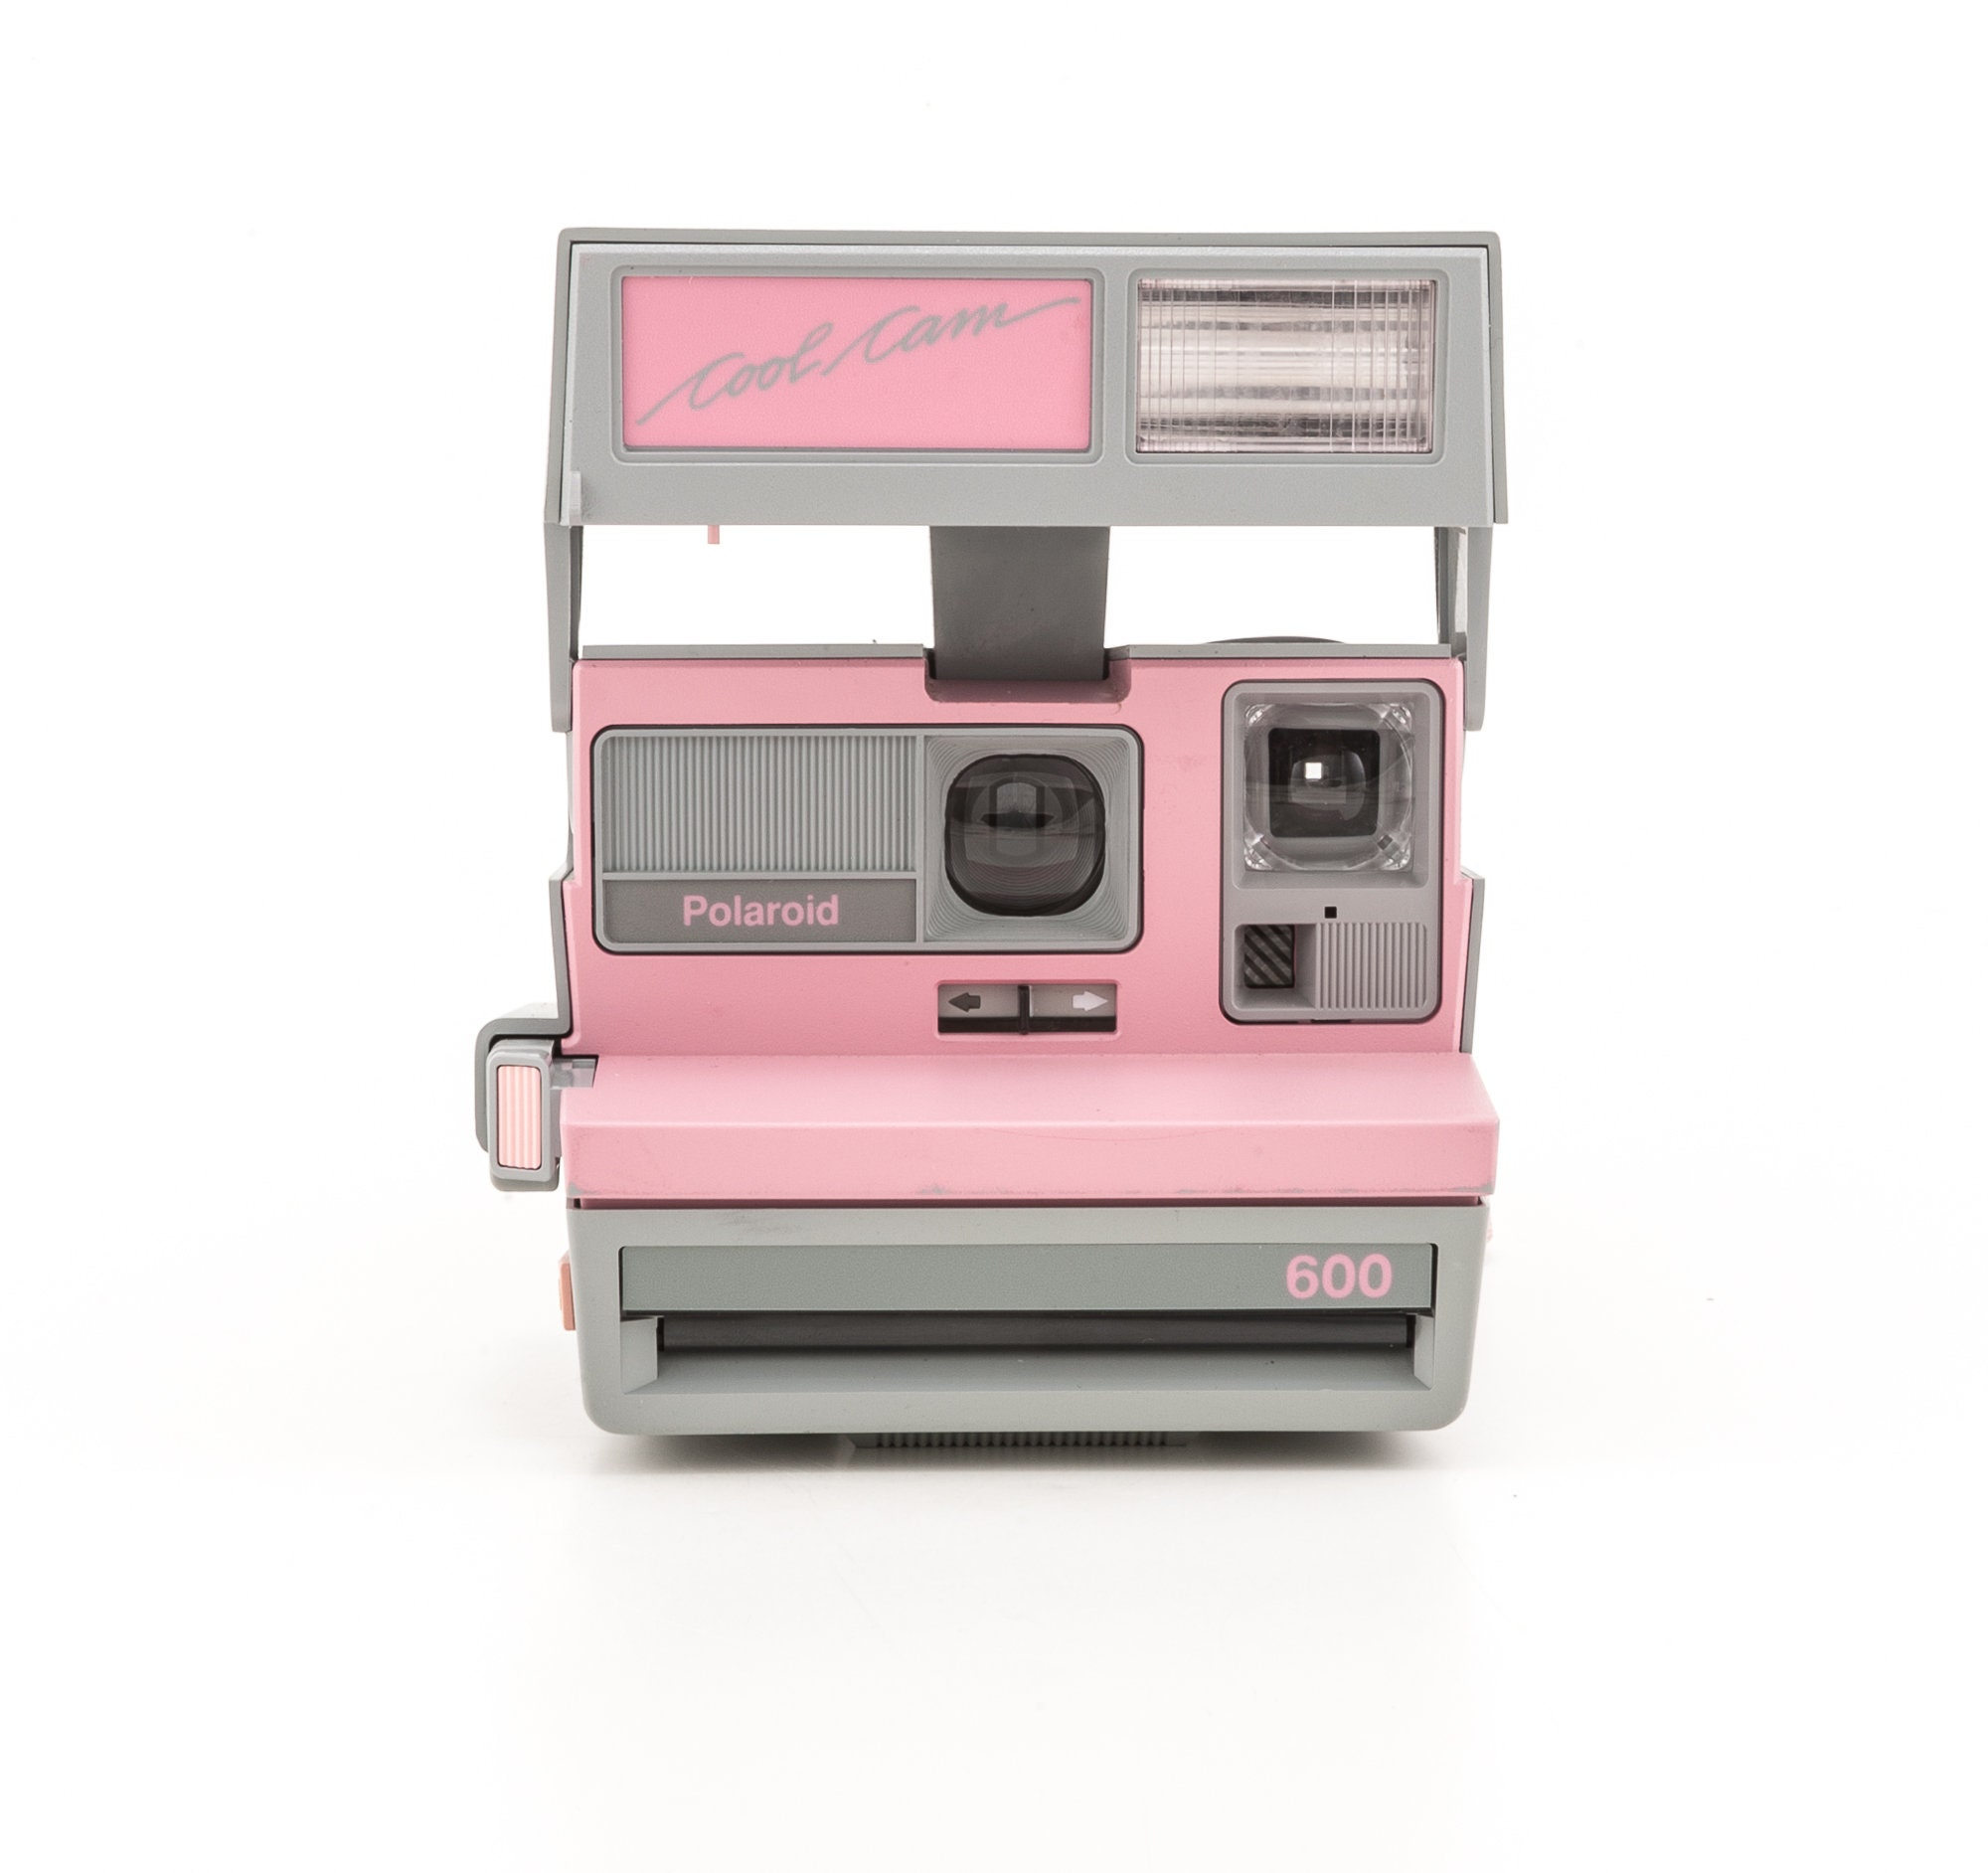 Polaroid 600 Cool Cam Pink & Grey Instant Camera - Tested and in Working  Condition